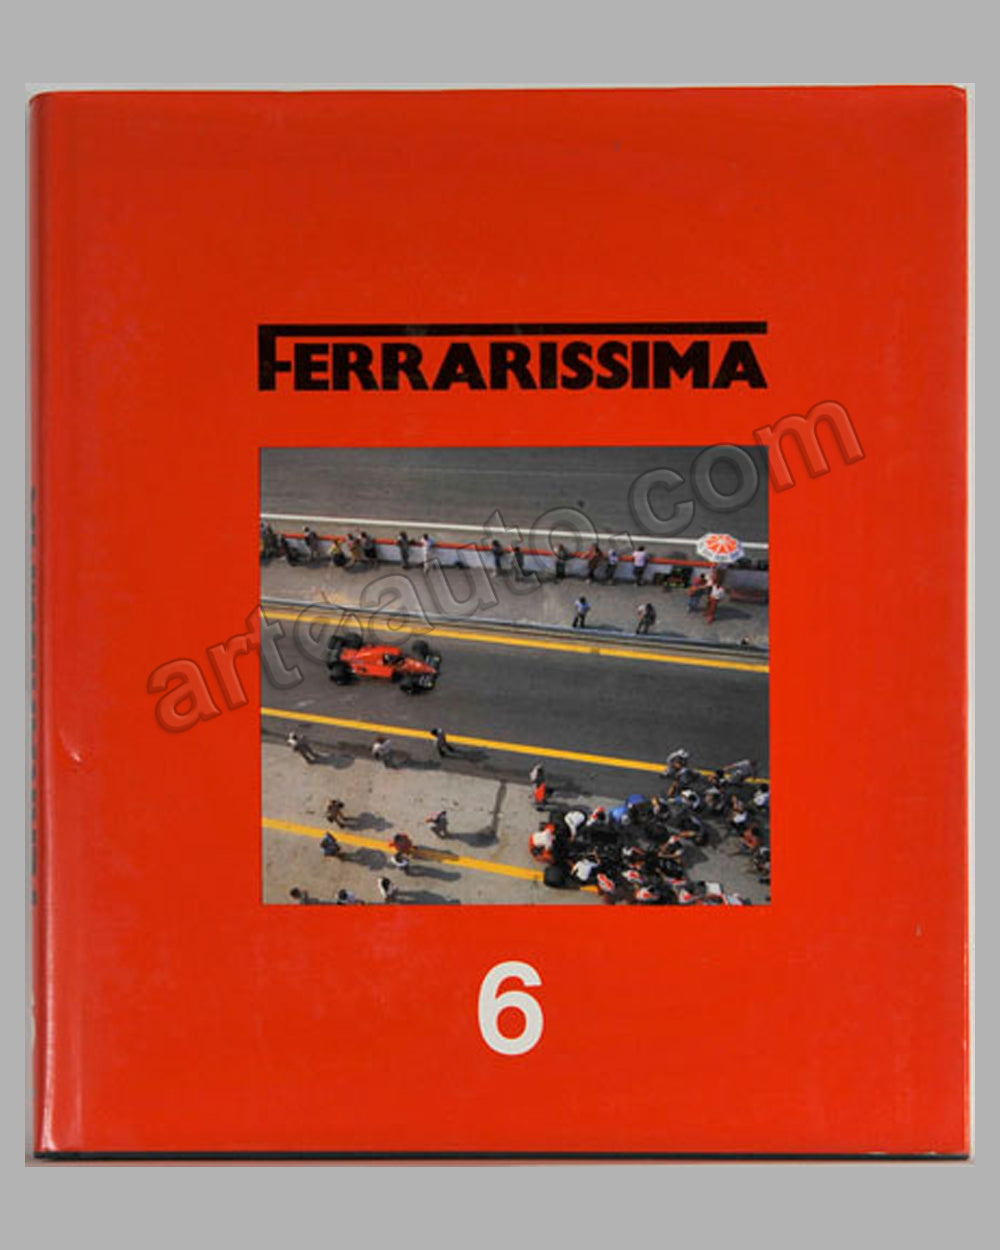 Ferrarissima 6 Book edited by G. Madaro, 1986, numbered ed. of 5000